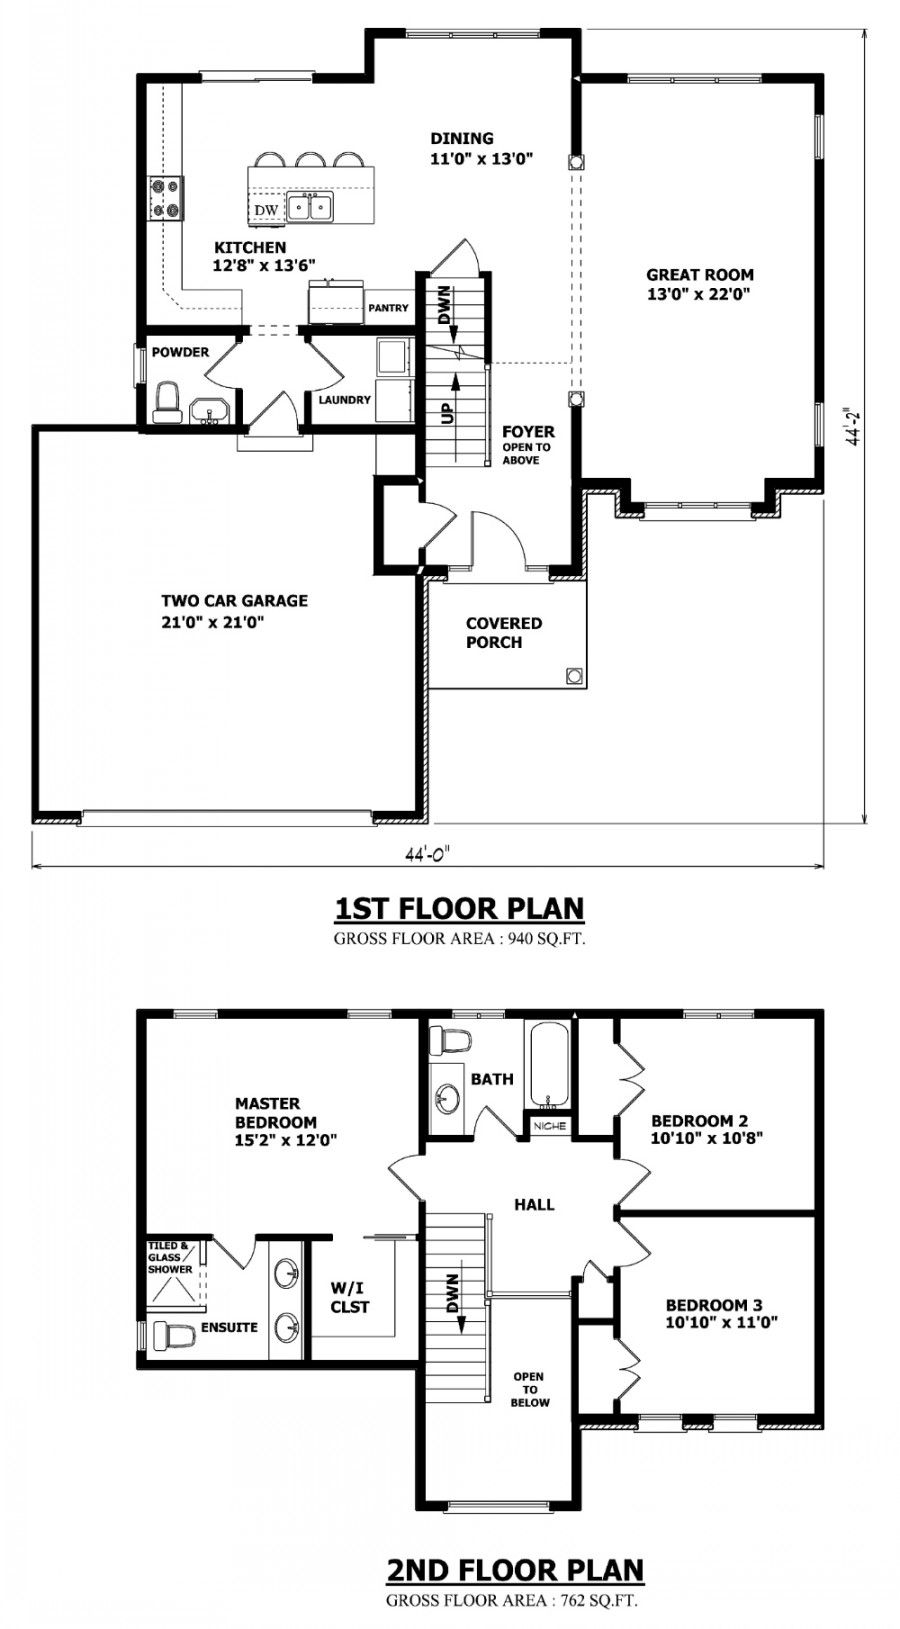 Home designs custom house plans stock house plans amp for Custom home design plans